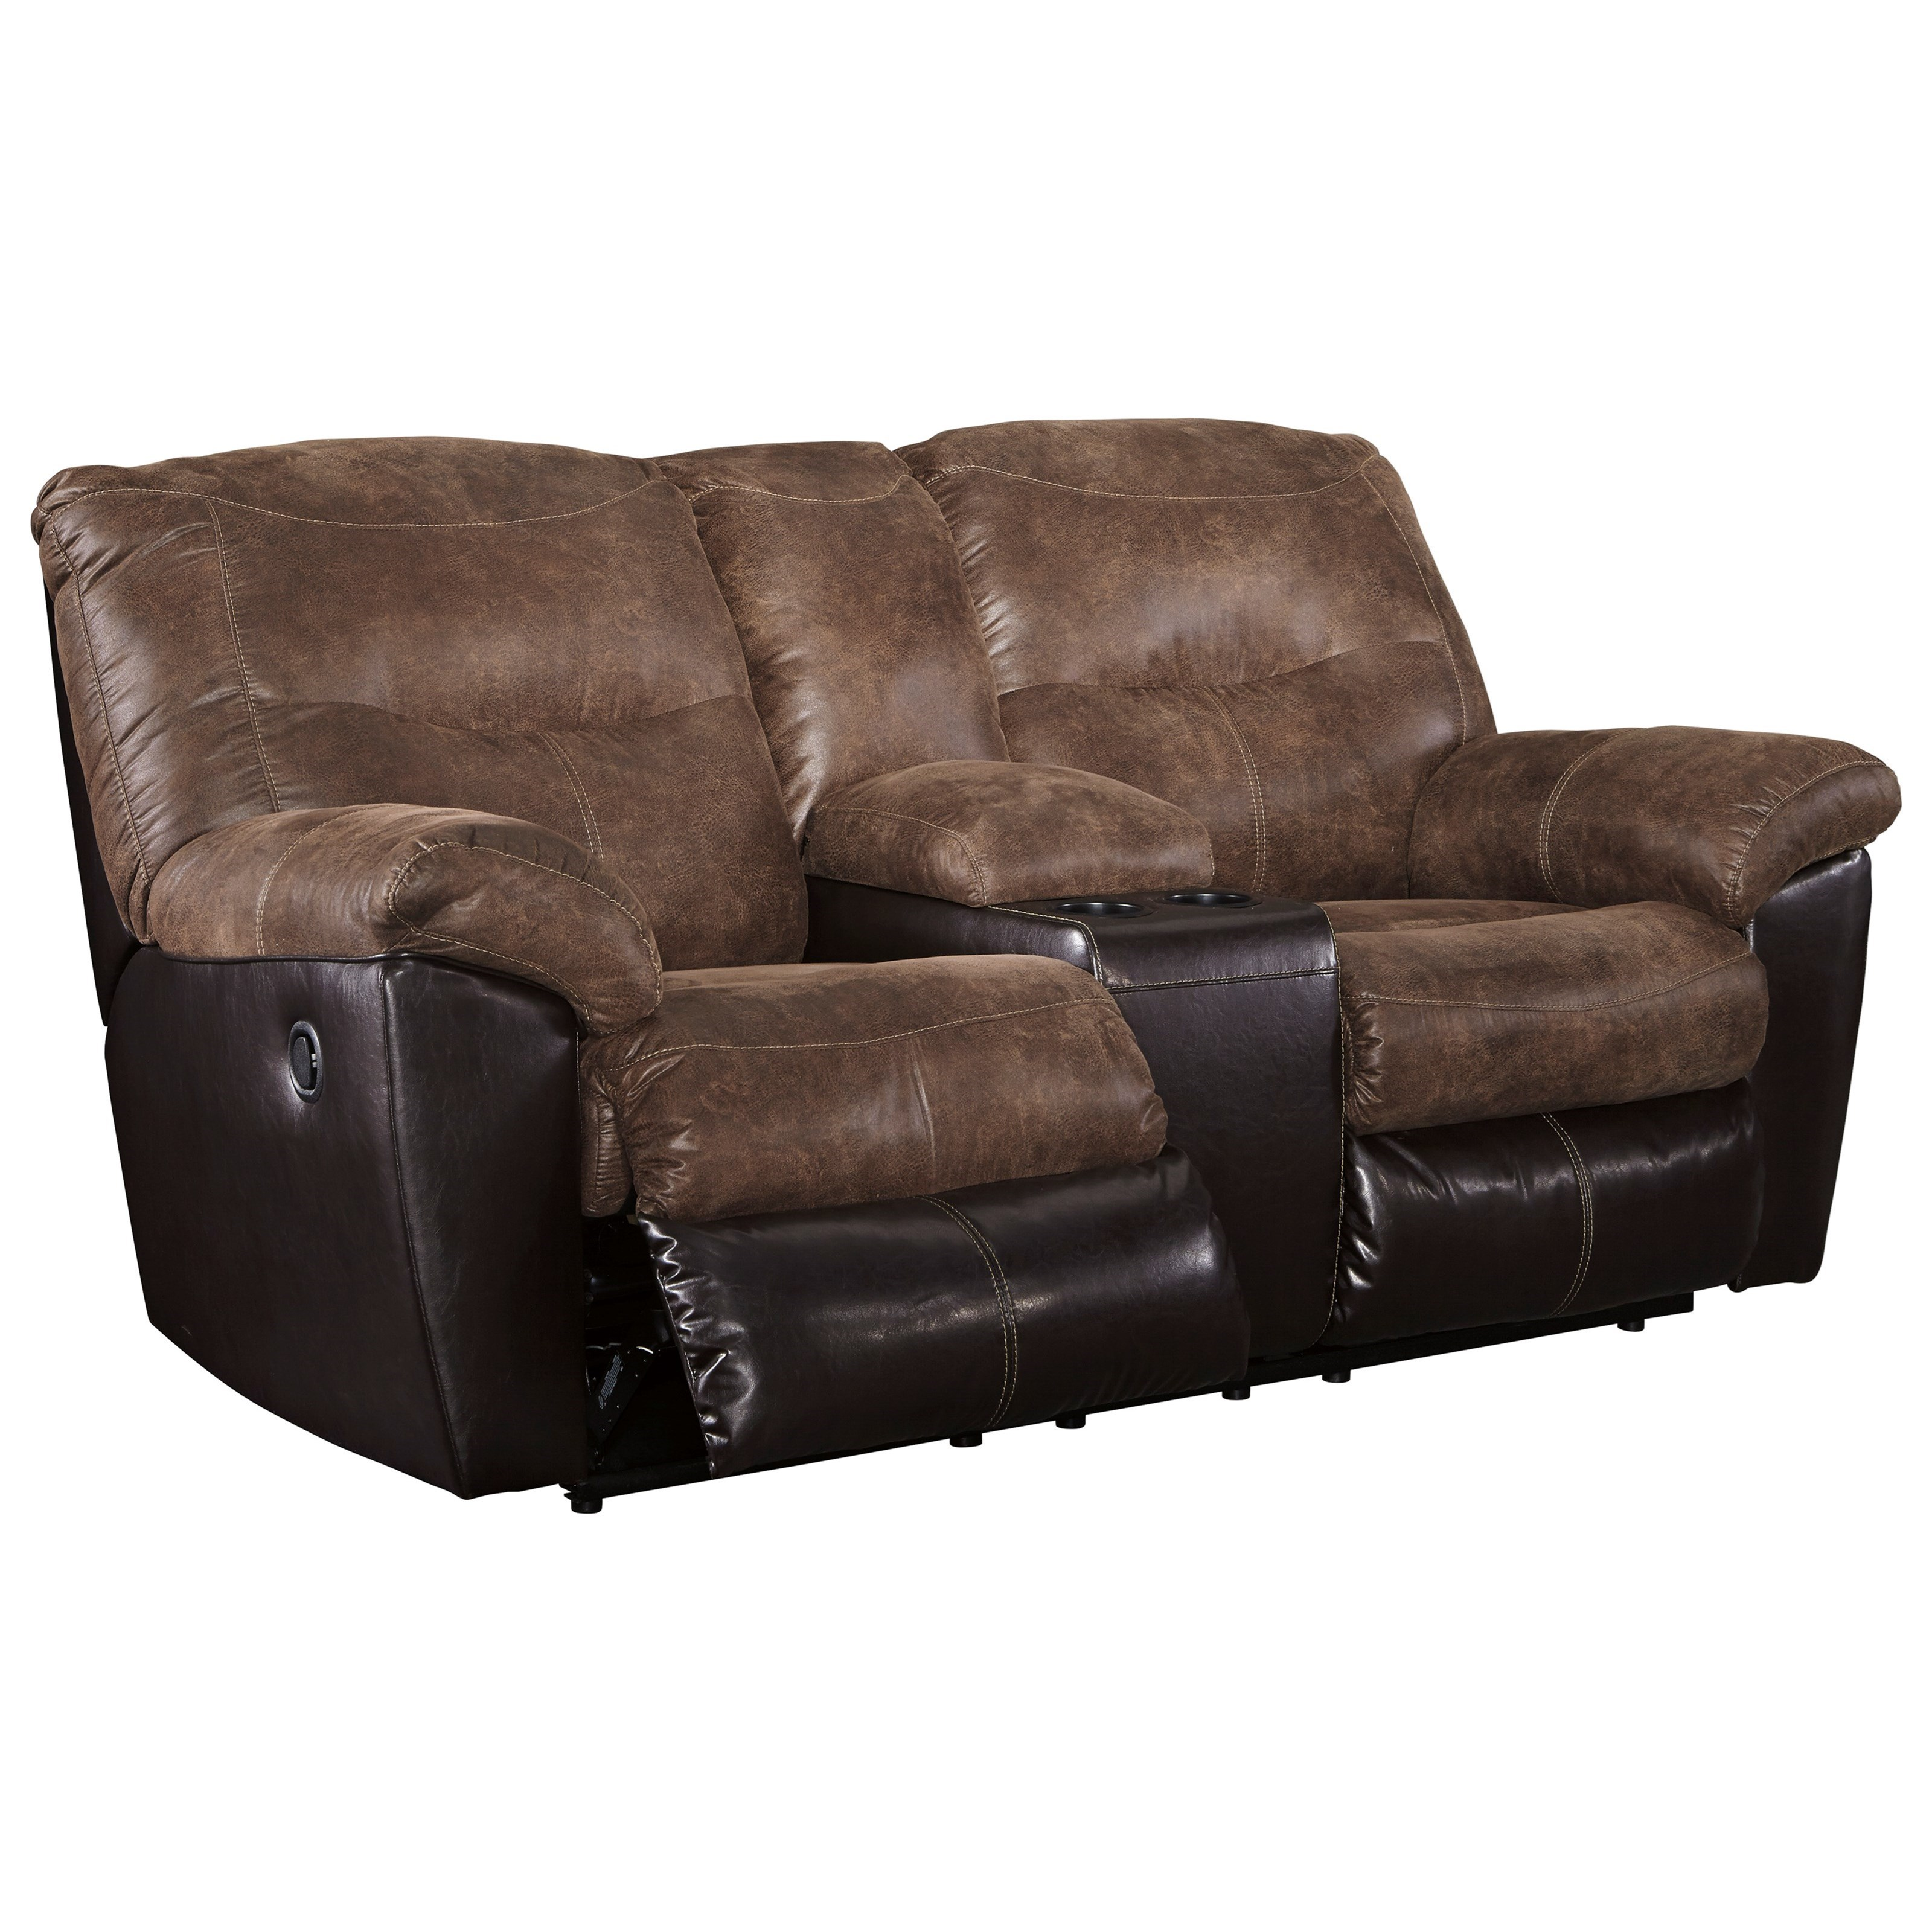 Awesome Two Tone Faux Leather Double Reclining Loveseat W Console Machost Co Dining Chair Design Ideas Machostcouk